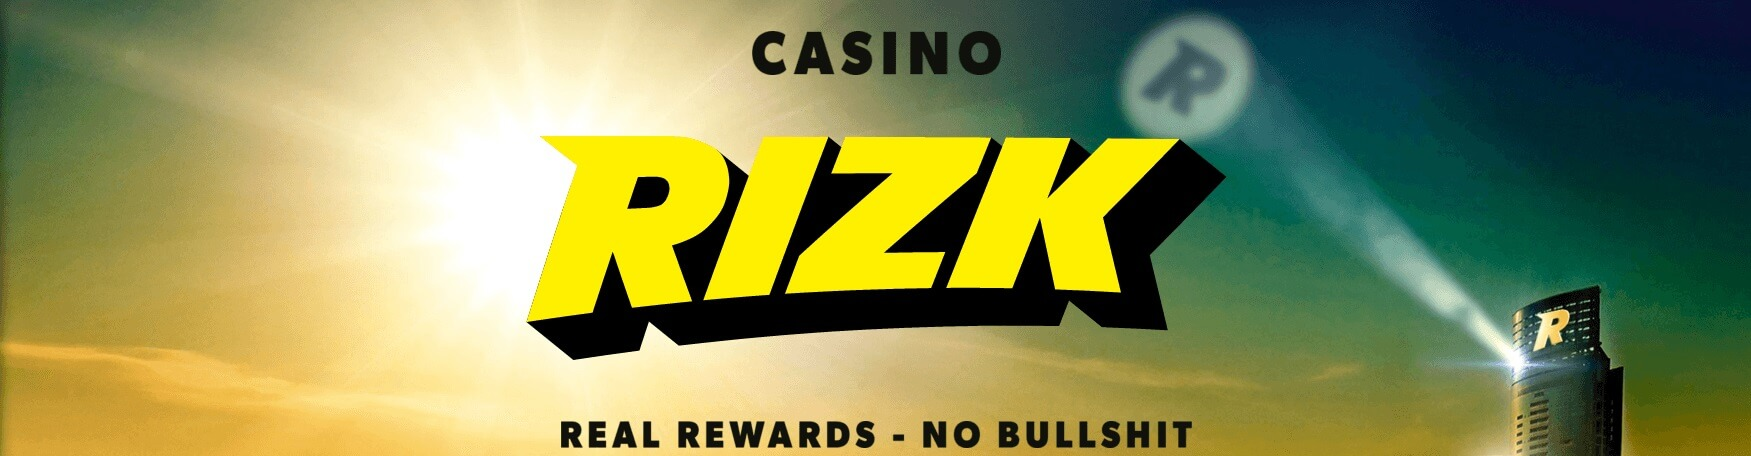 Rizk Casino Online Promotions - Rizk Power Bar - Rizk.com